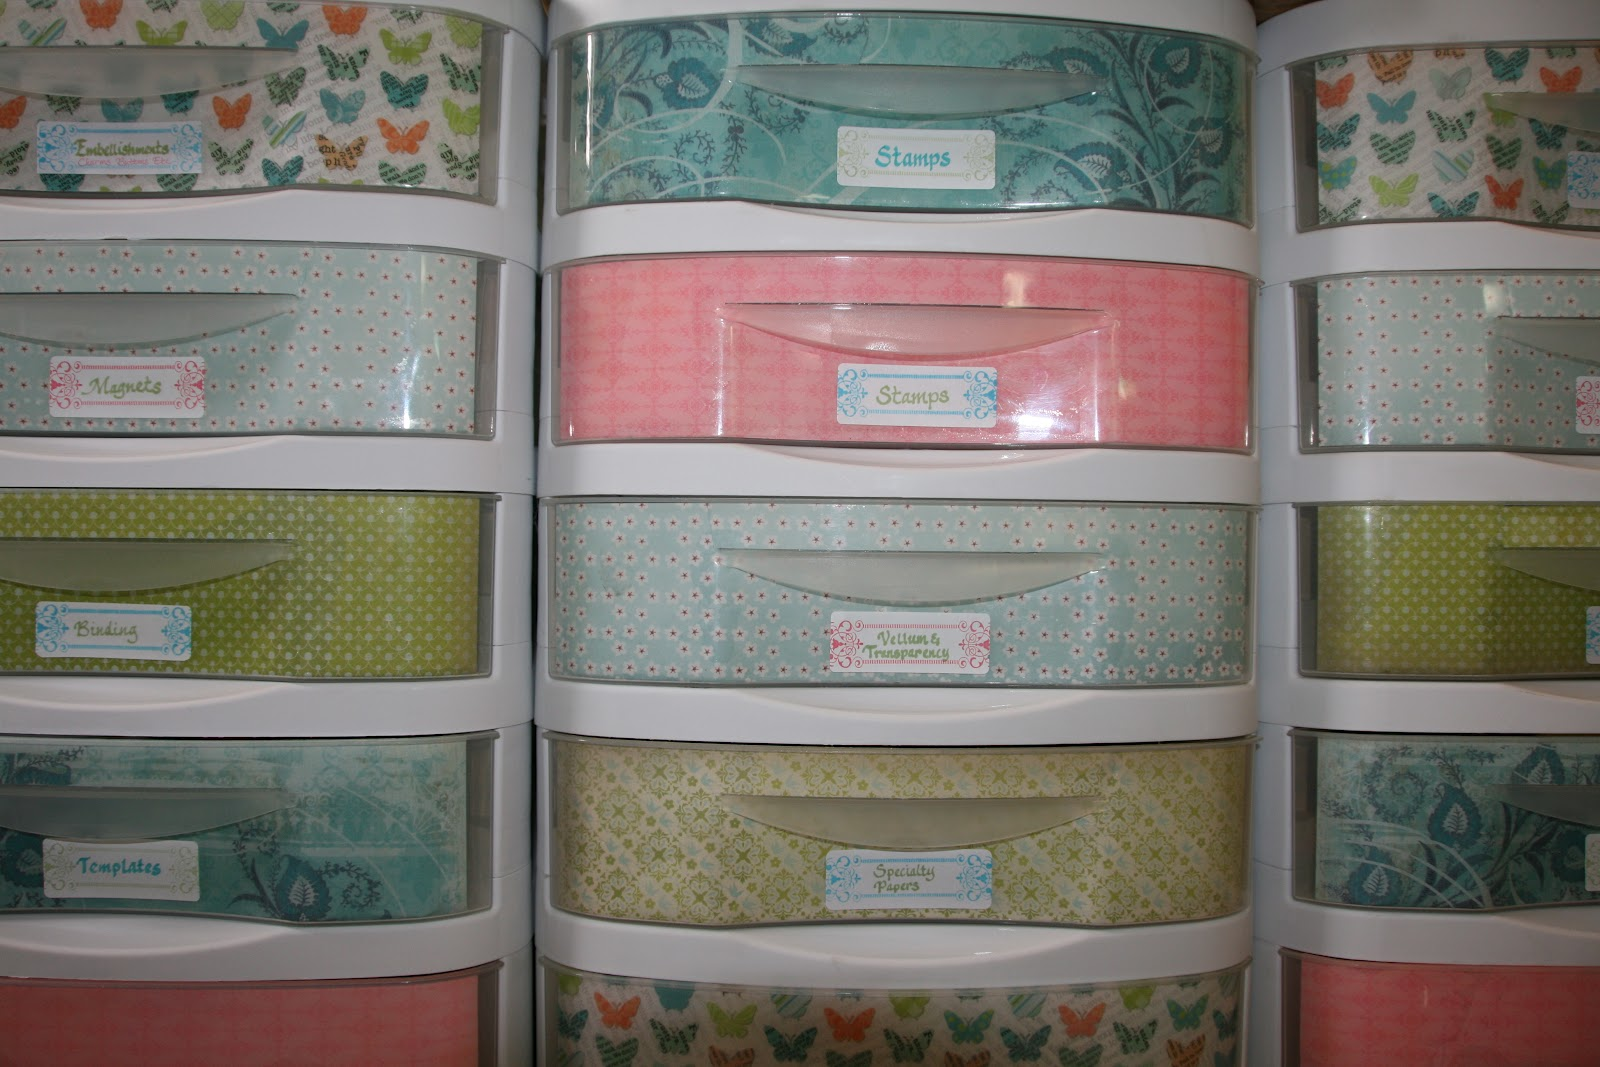 Lw designs workspace wednesday plastic drawer makeover for Plastic craft storage drawers